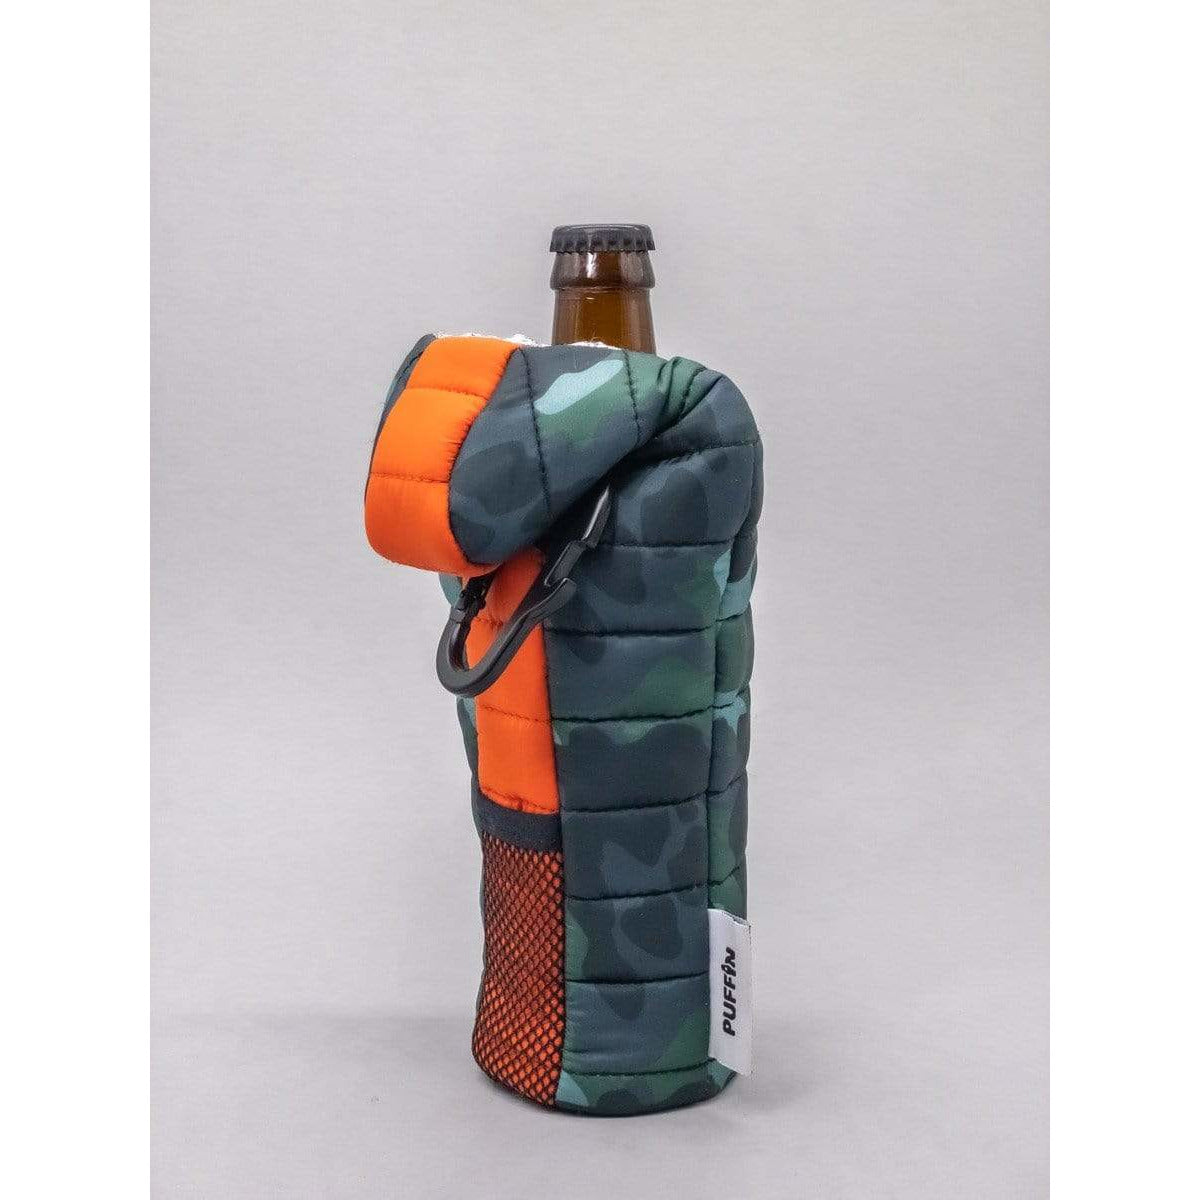 Puffin Camping Gear Beverage Bottle Insulator - Camo Sleeping Bag